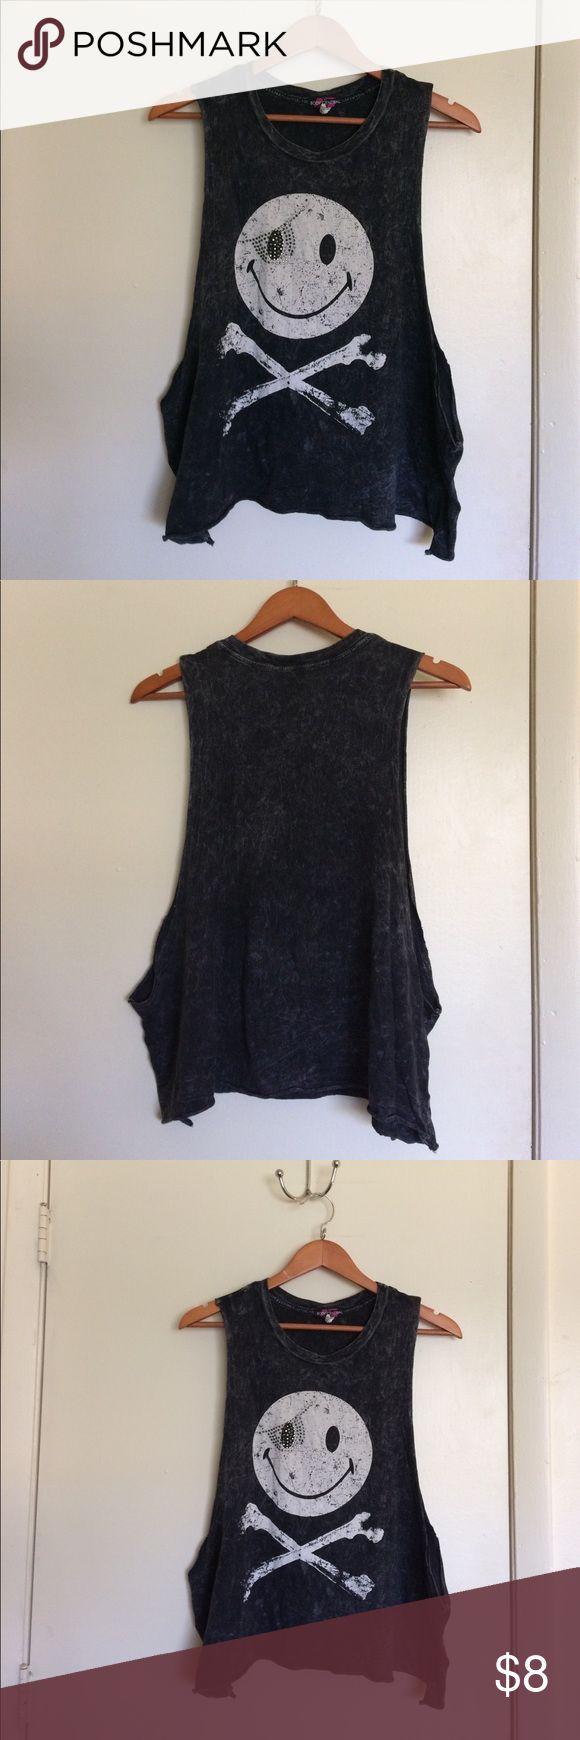 Body Central Muscle Top Size Medium. Body Central Muscle Top Size Medium. Great condition! Super comfortable and light! Body Central Tops Muscle Tees